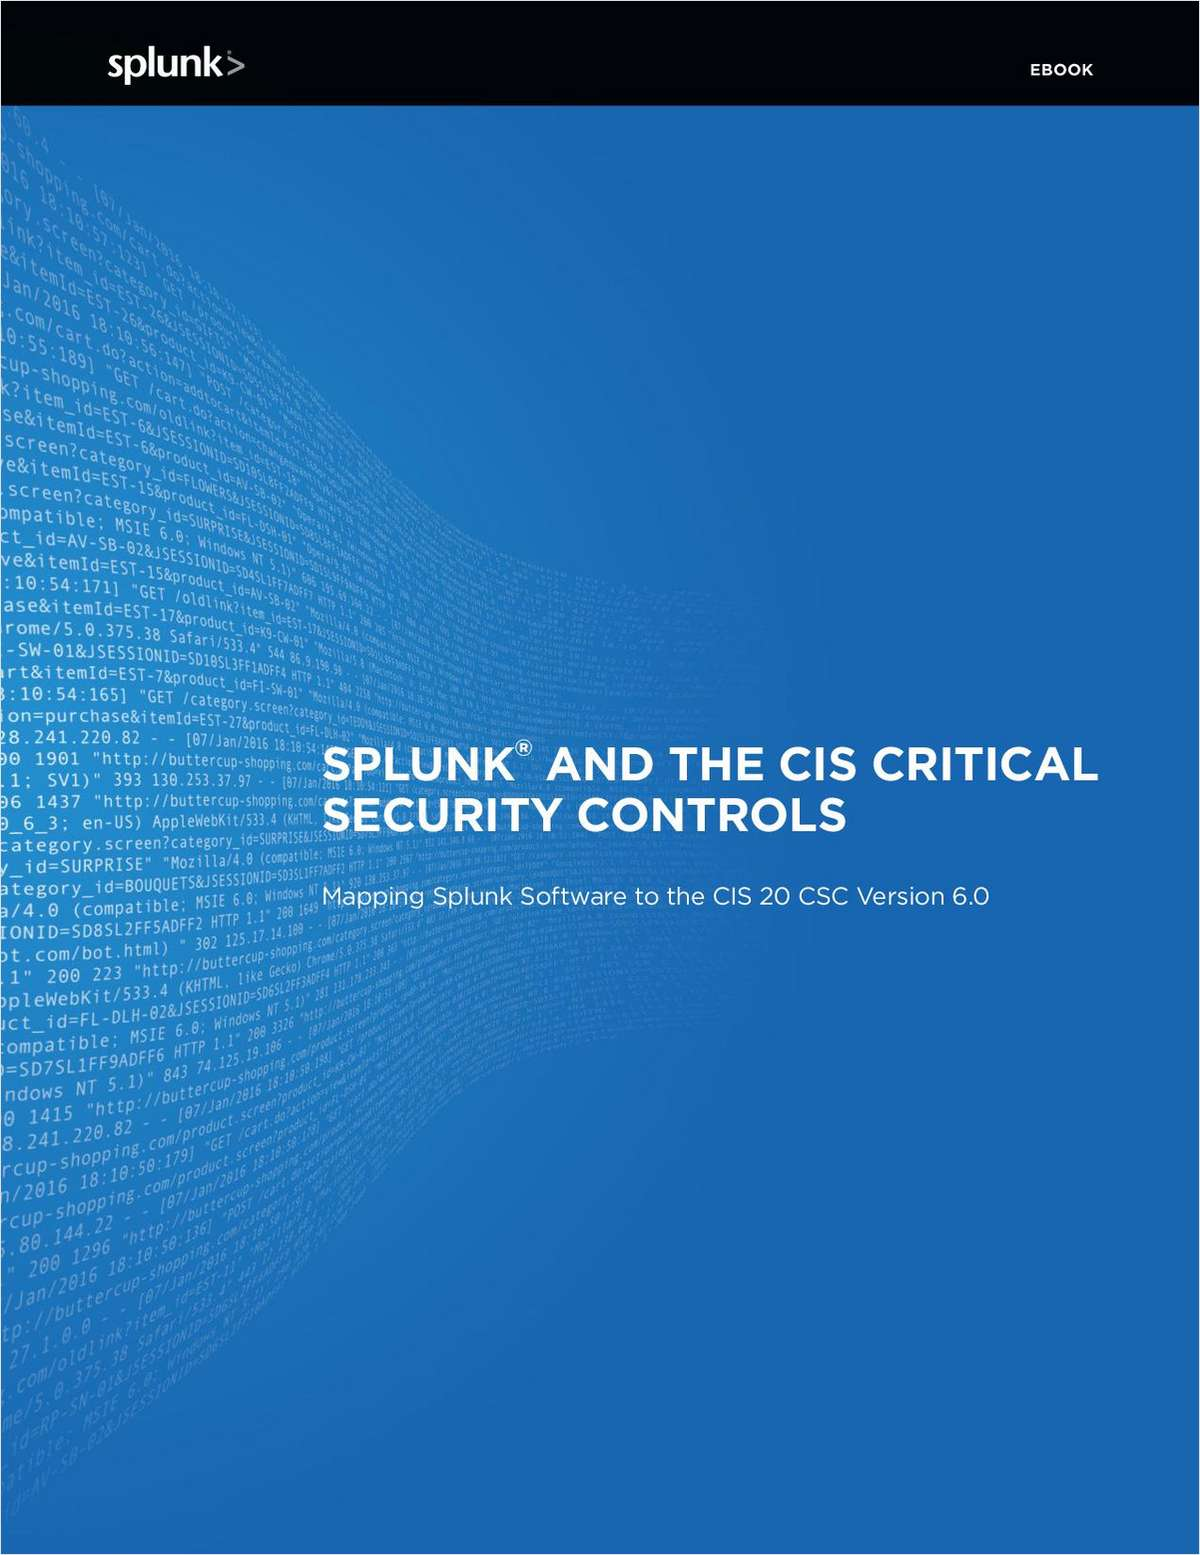 Splunk and the CIS Critical Security Controls